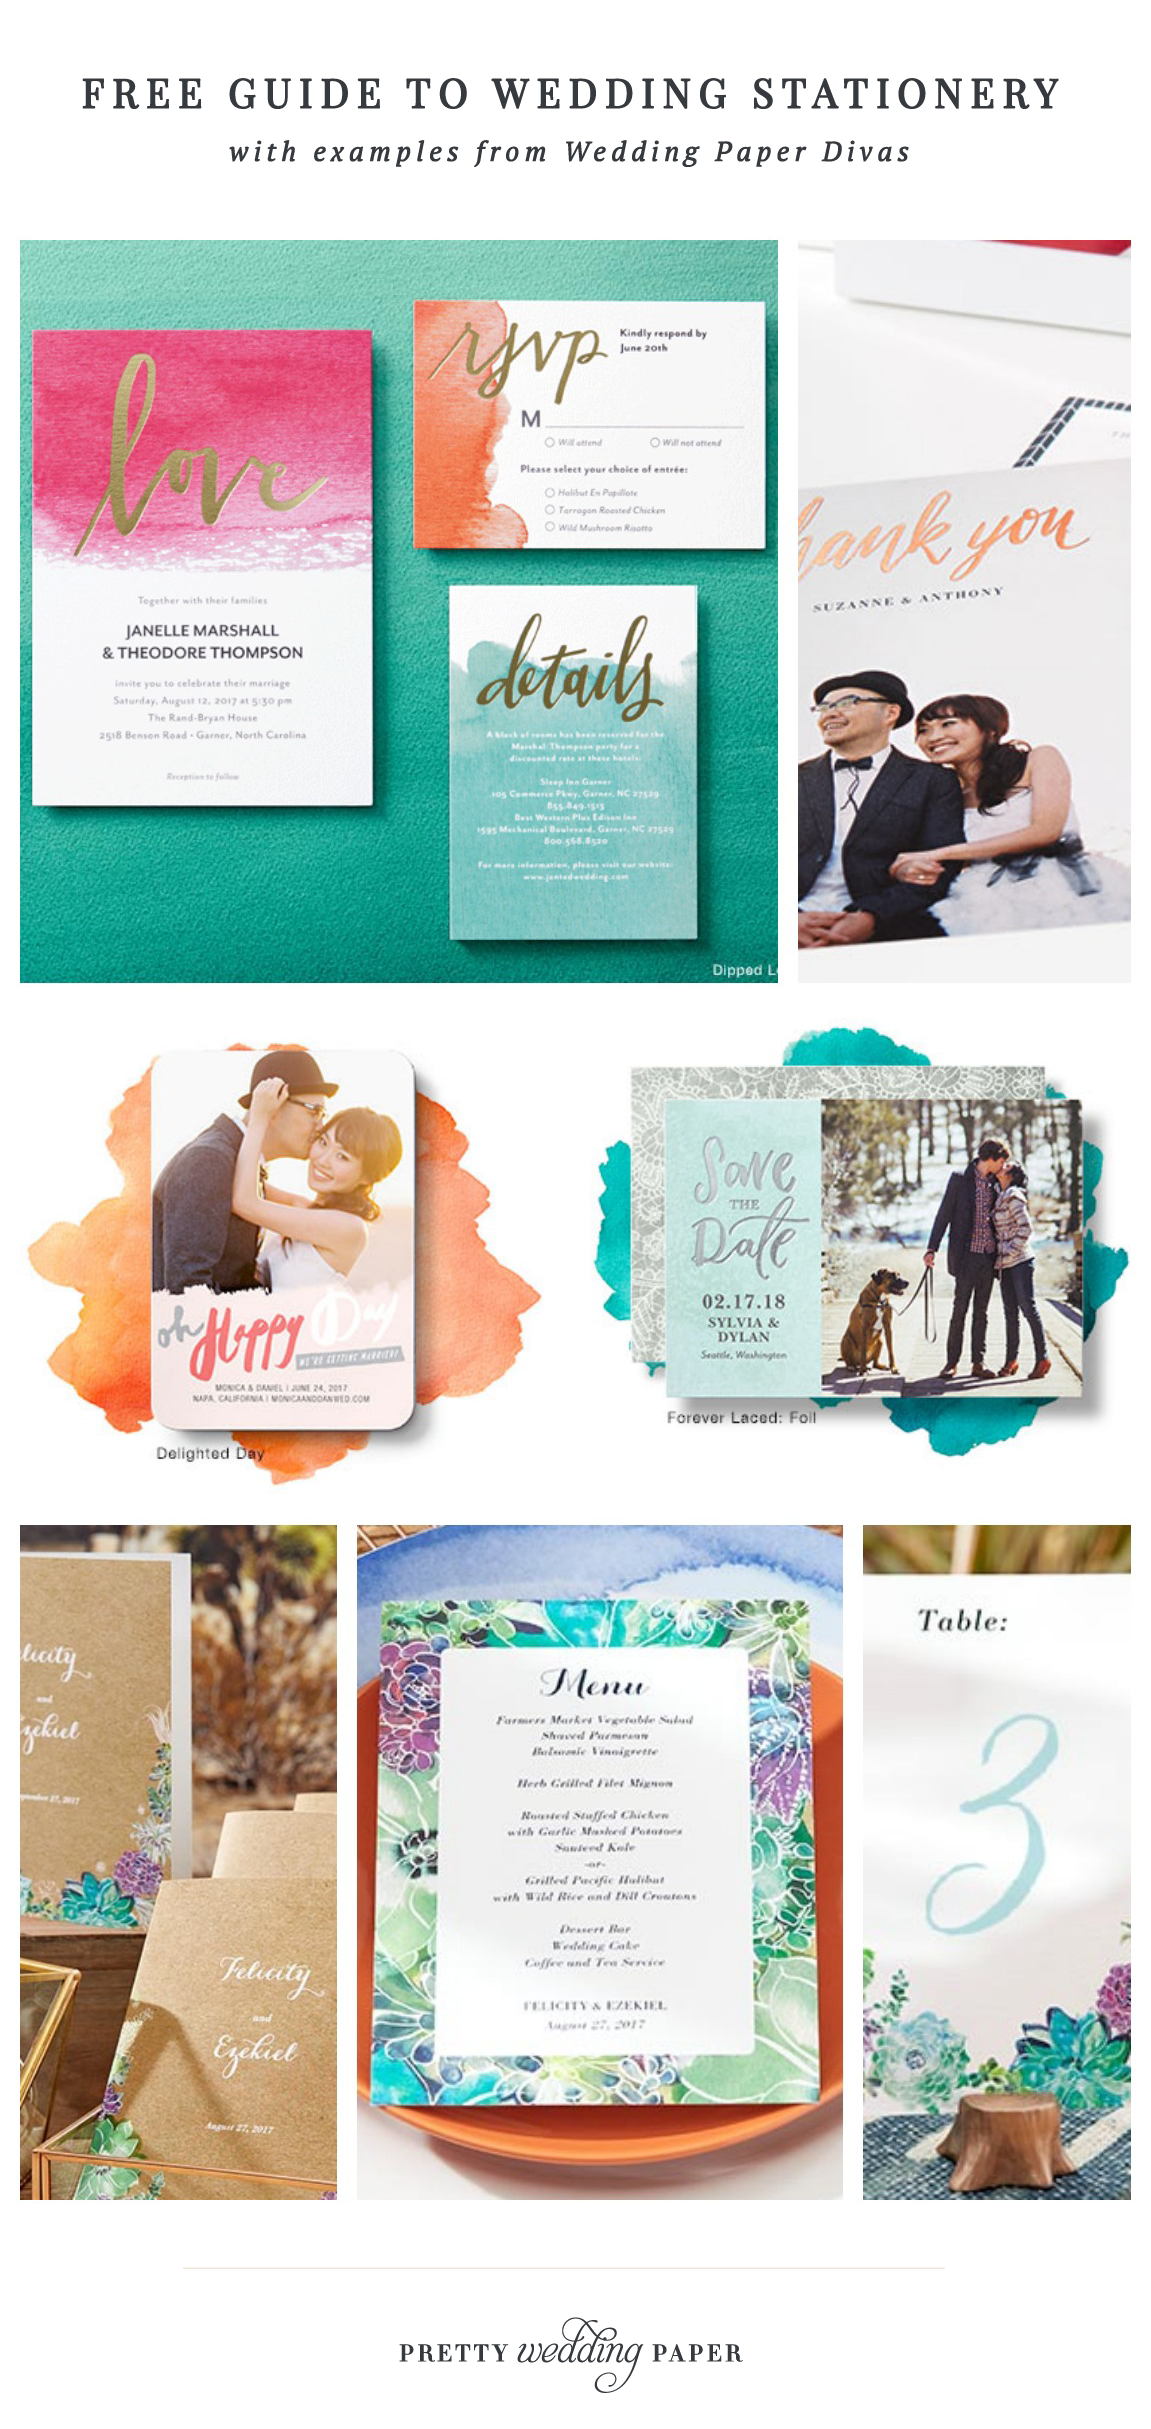 Free Guide To Wedding Stationery Ideas For Save The Dates Wedding